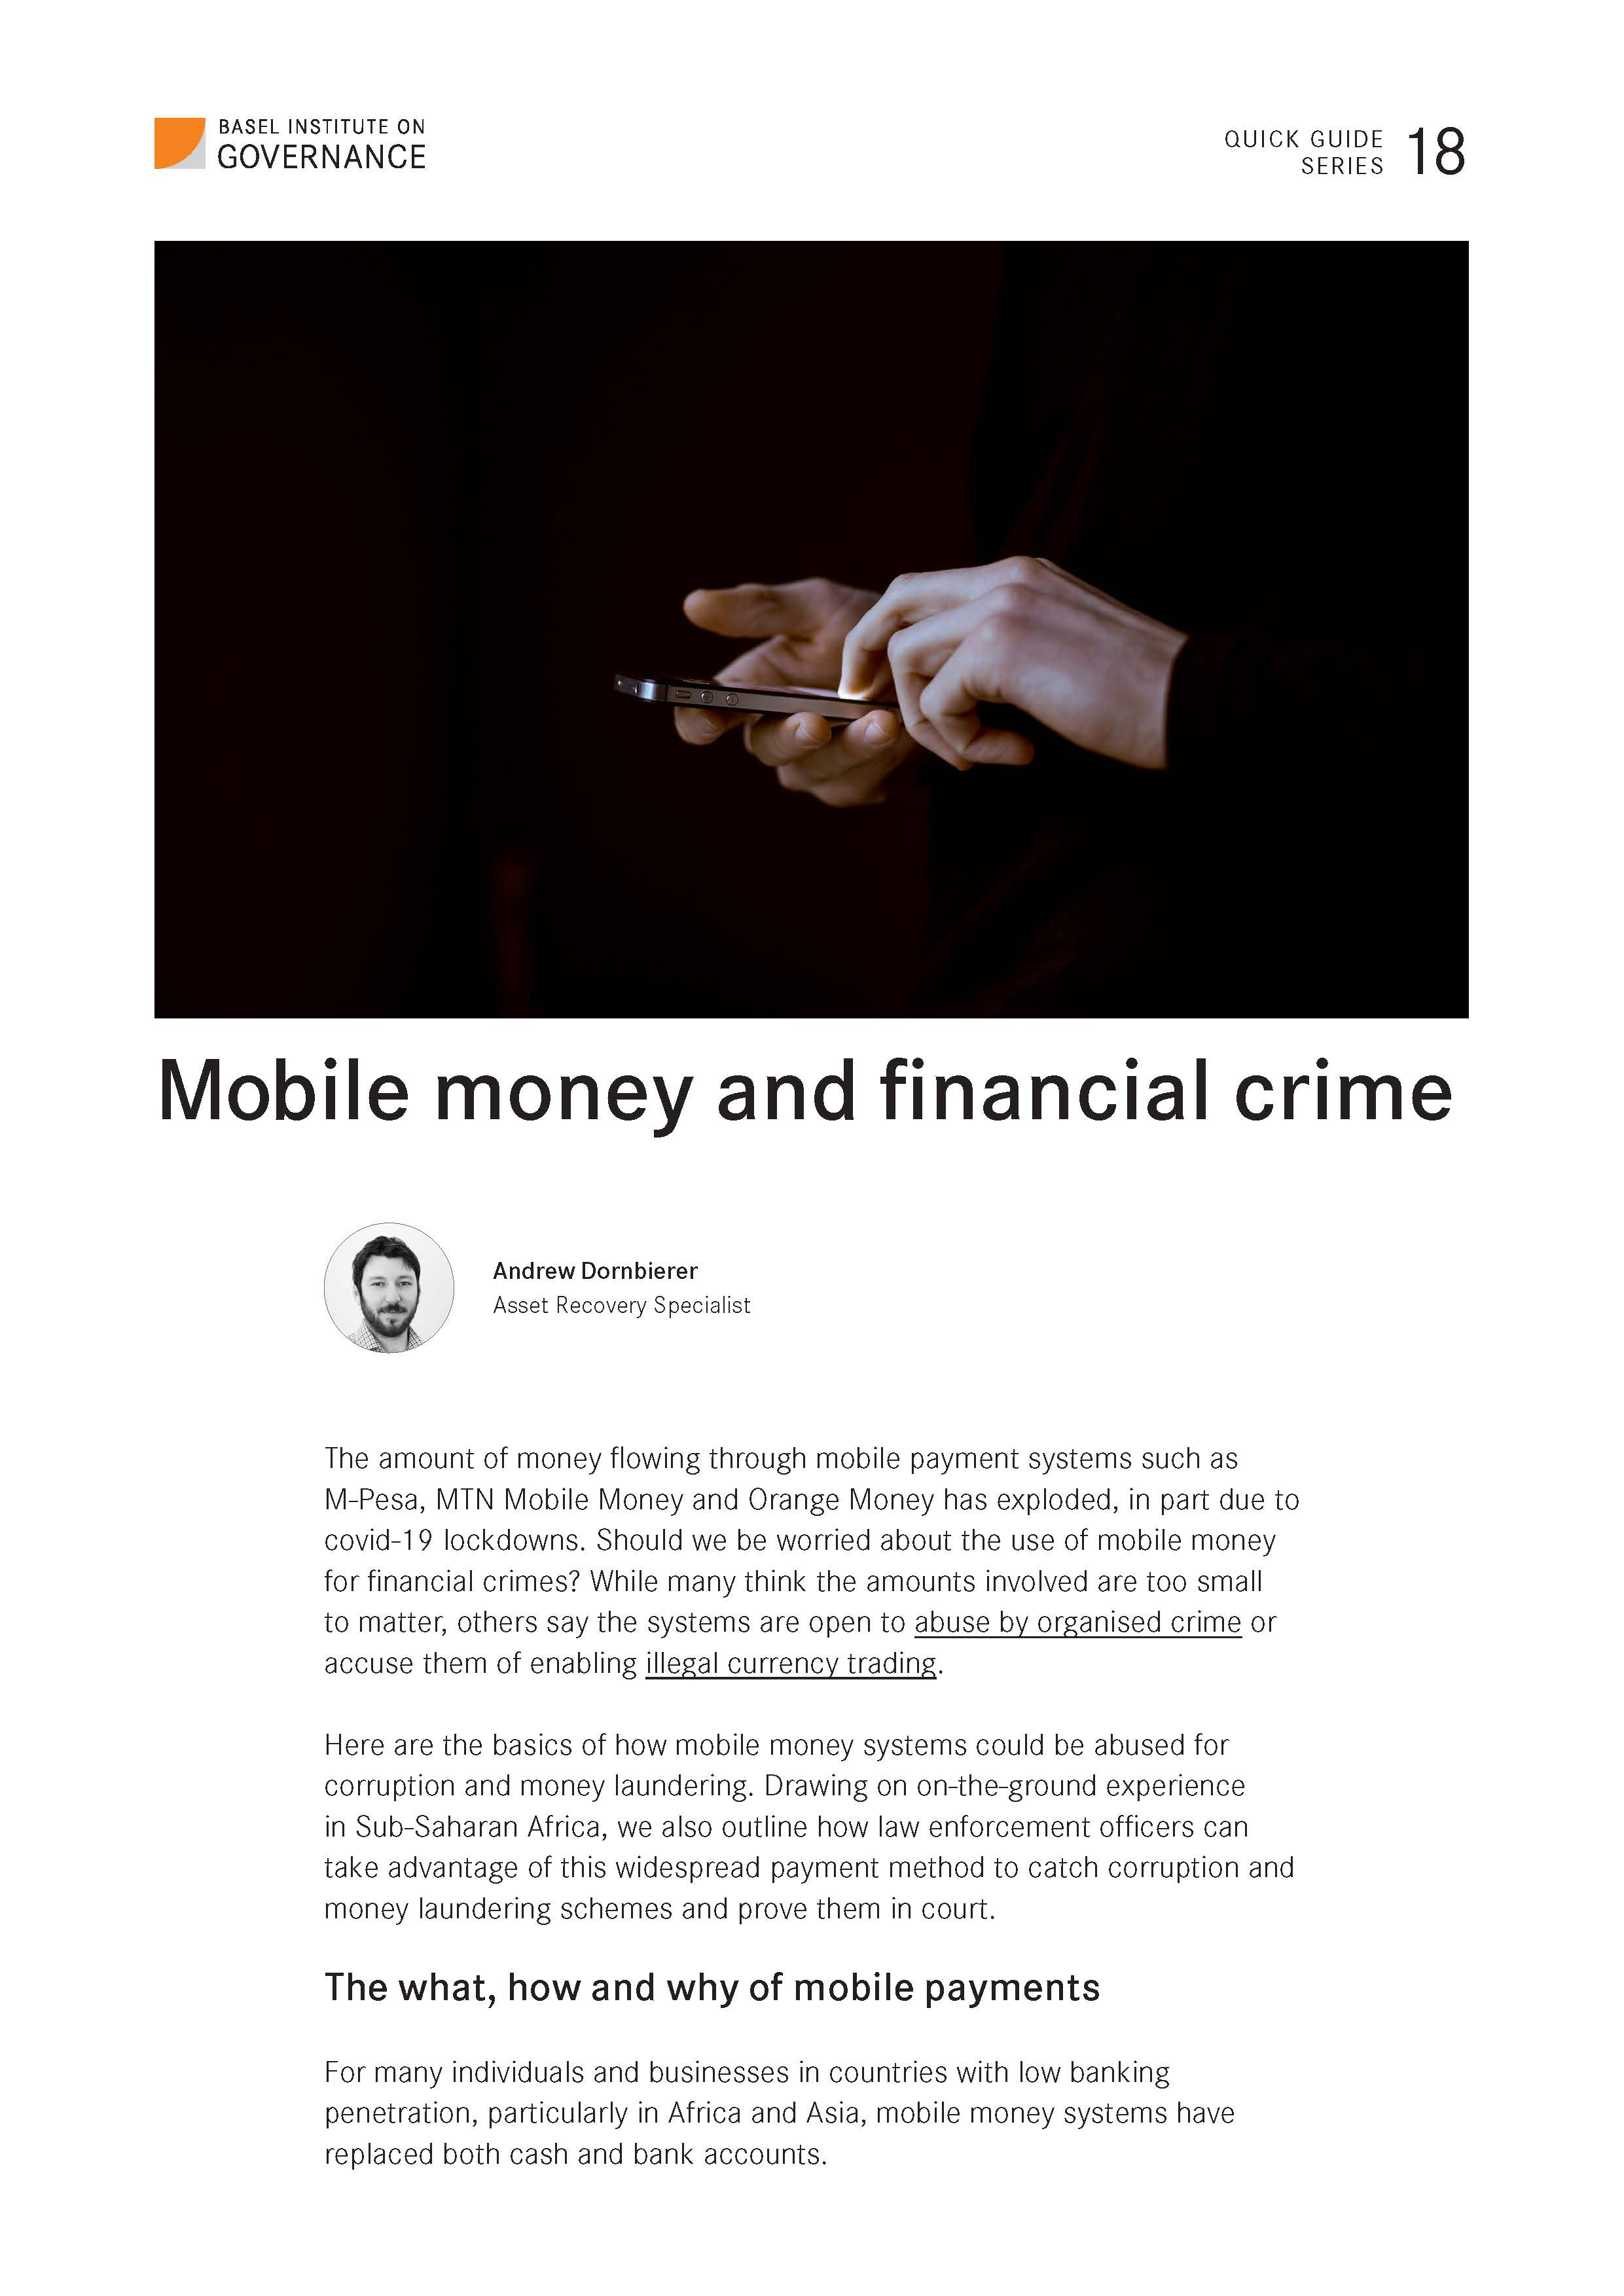 1st page of quick guide to mobile money and financial crime